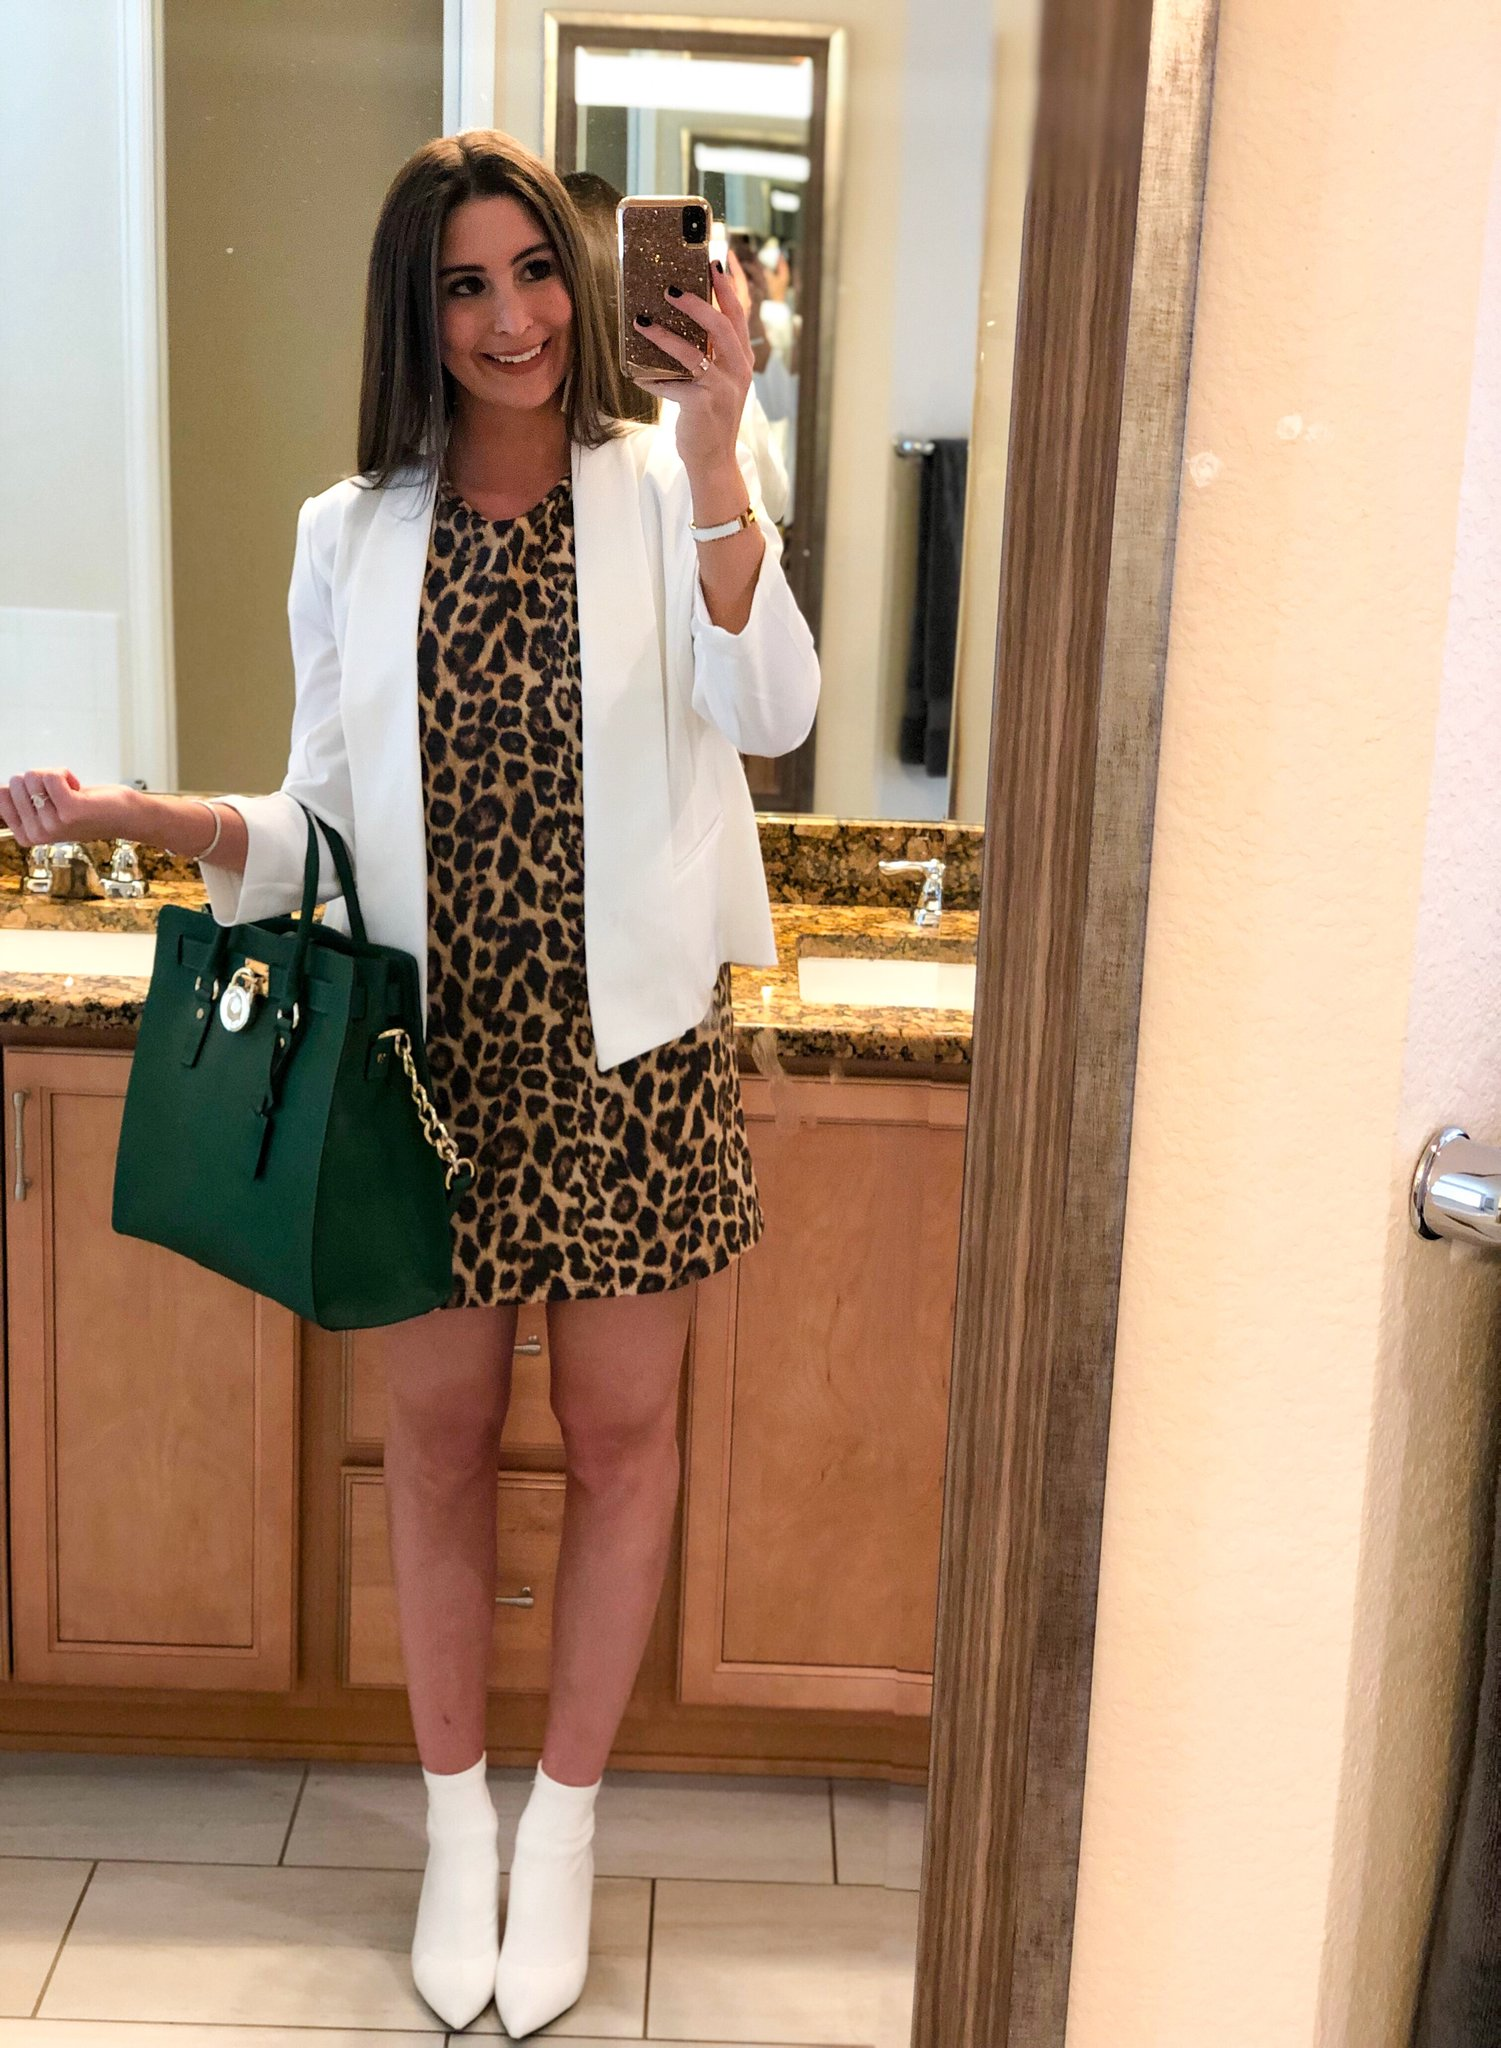 OOTN - Occasion: Influencer dinner, STK Two Year Anniversary & Spring PreviewMarch 2019Outfit Details:Similar Leopard T-Shirt DressSimilar White BlazerSimilar White BootiesSimilar Michael Kors Purse